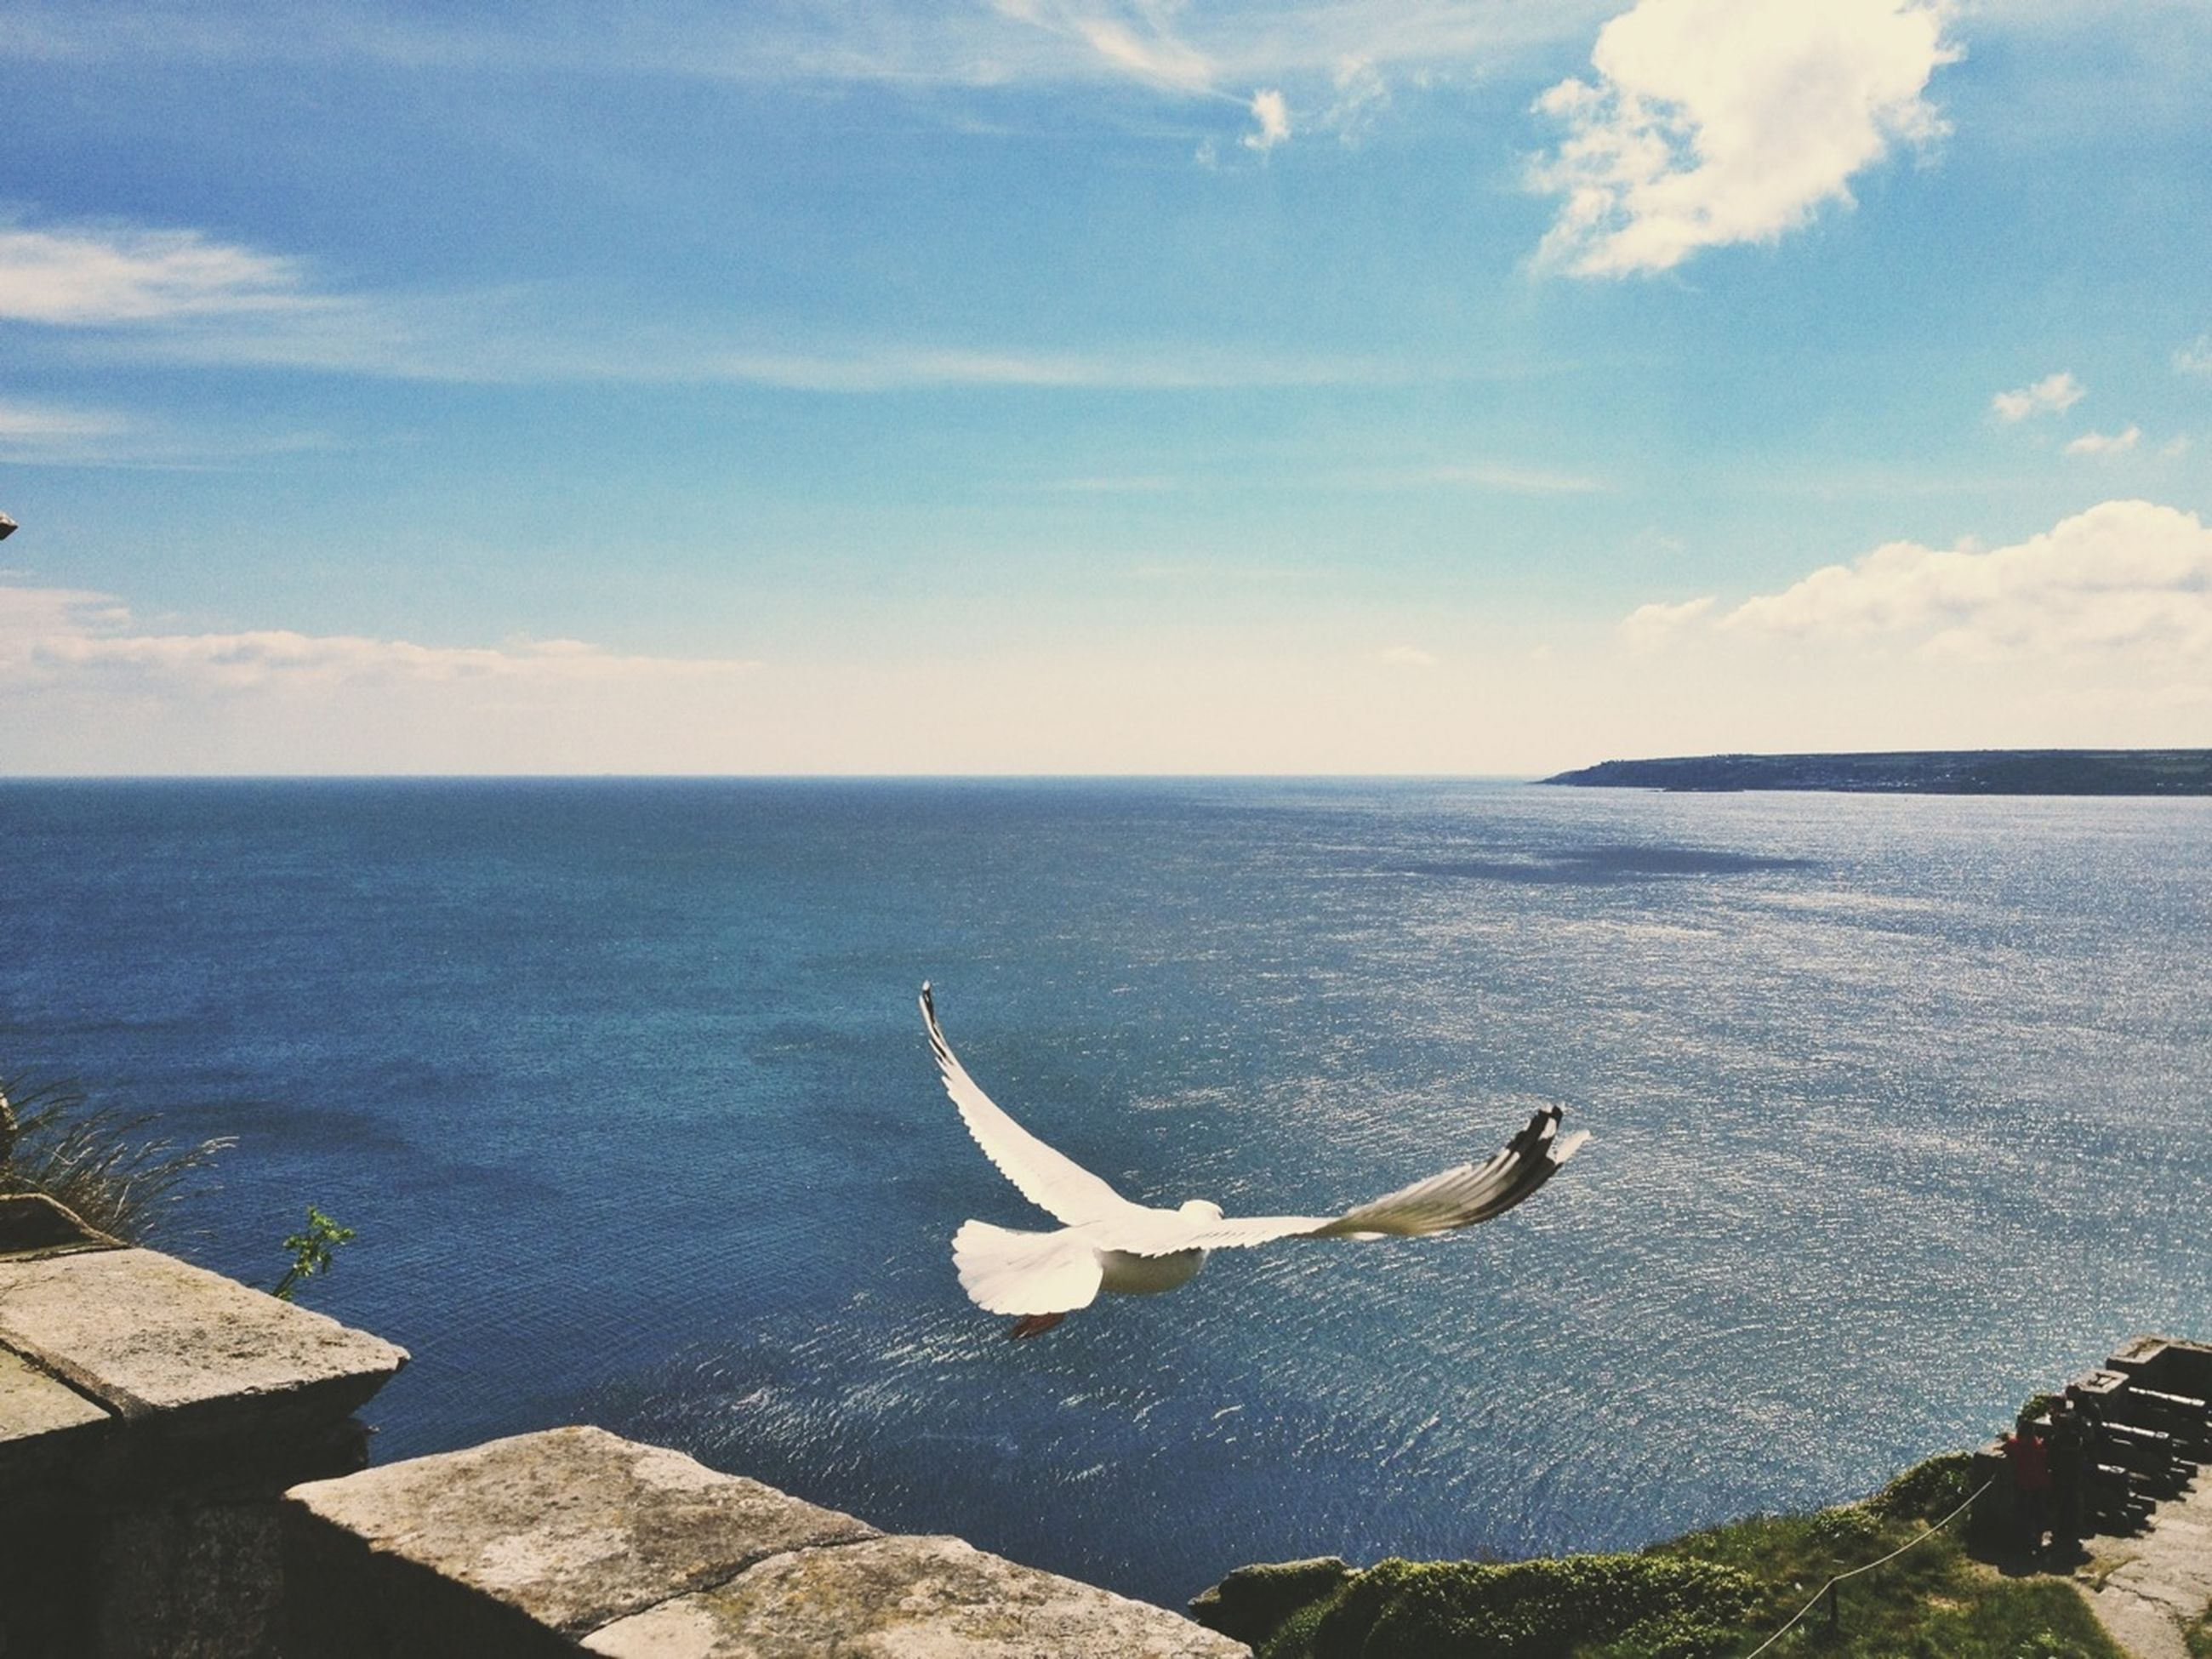 sea, water, horizon over water, sky, tranquil scene, scenics, blue, tranquility, beauty in nature, nature, bird, flying, cloud, idyllic, cloud - sky, outdoors, day, no people, seagull, seascape